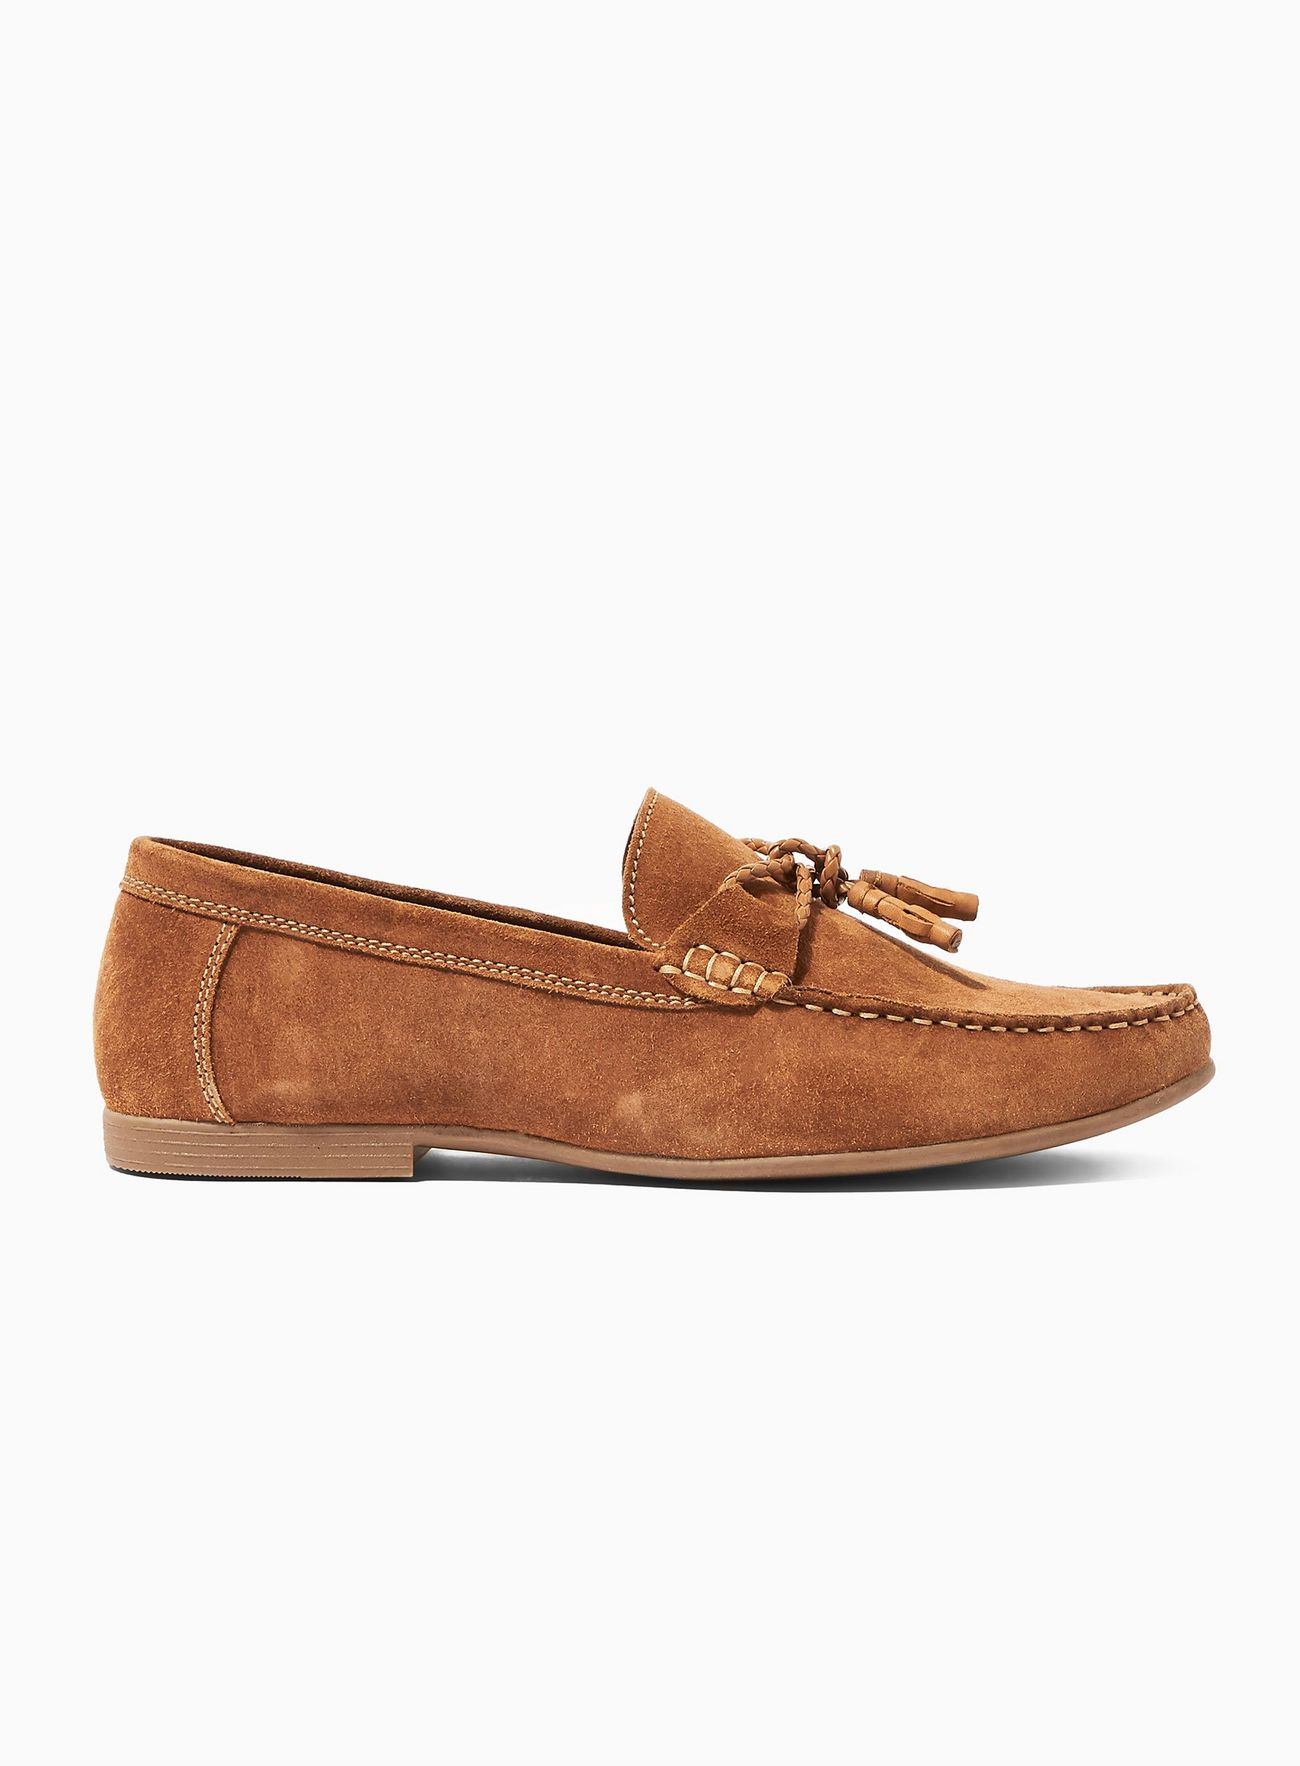 Tan Suede Mason Loafers